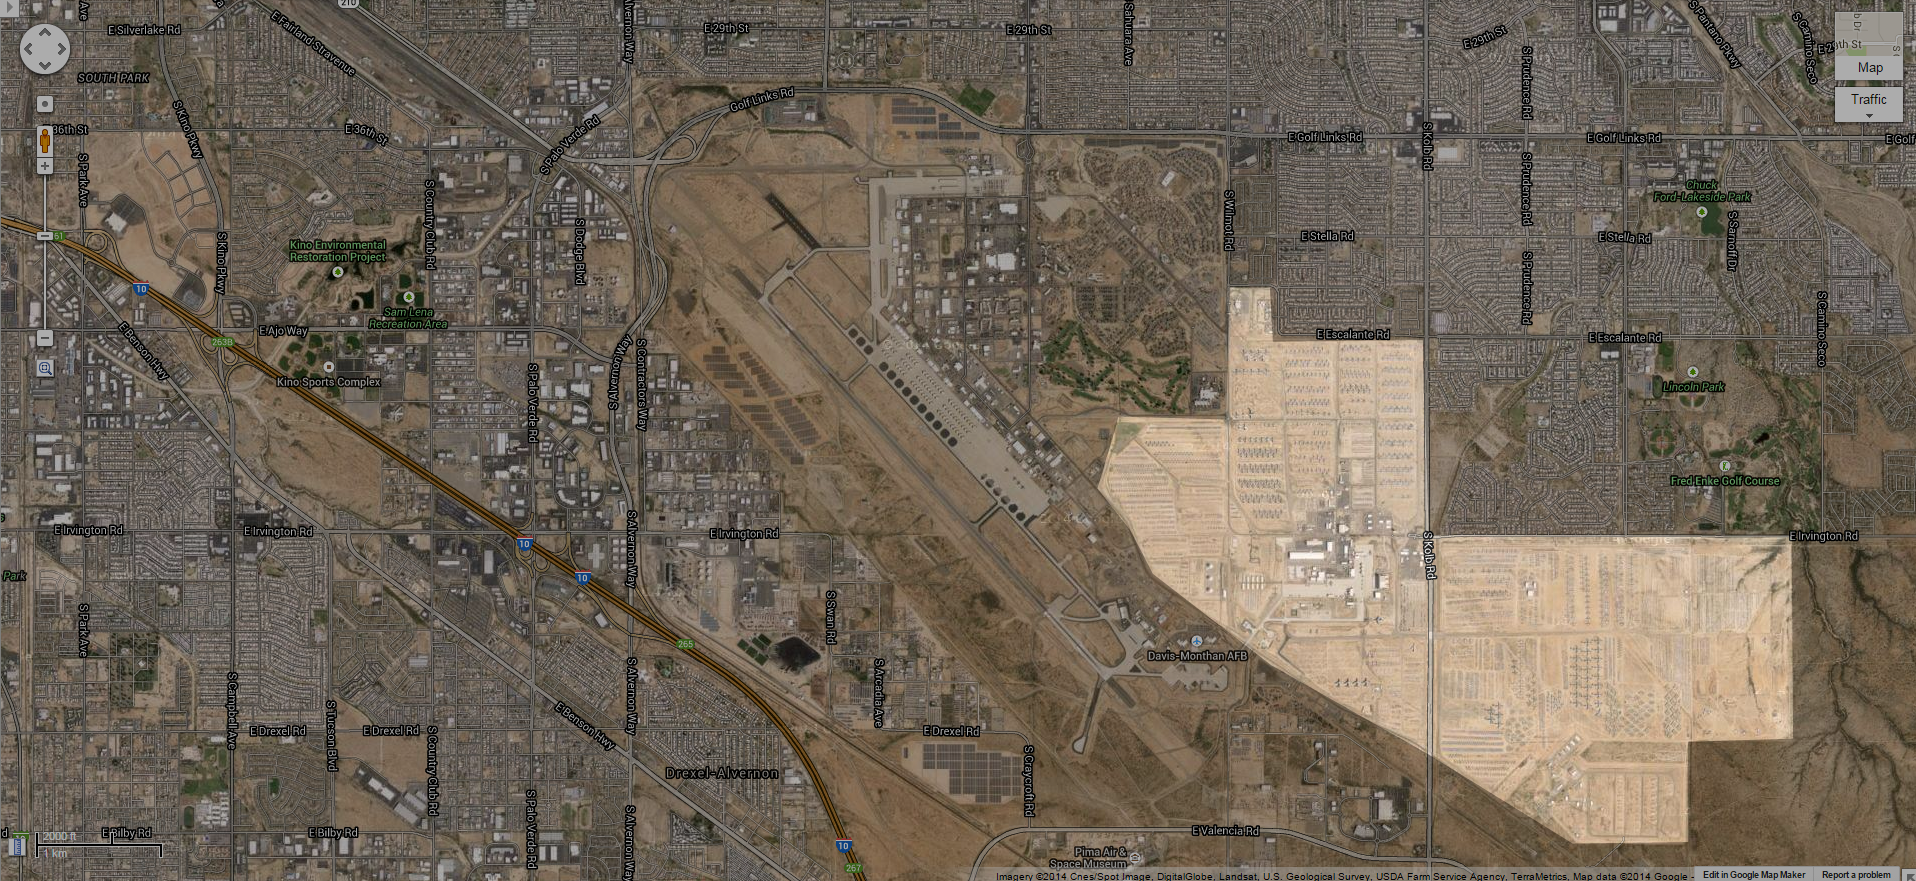 The highlighted area is the boneyard. The building in the middle and airfield isDavis-Monthan Air Force Base. The rest is Tuscon, AZ. For perspective the highlighted area is about 200 acres or .3 square miles.